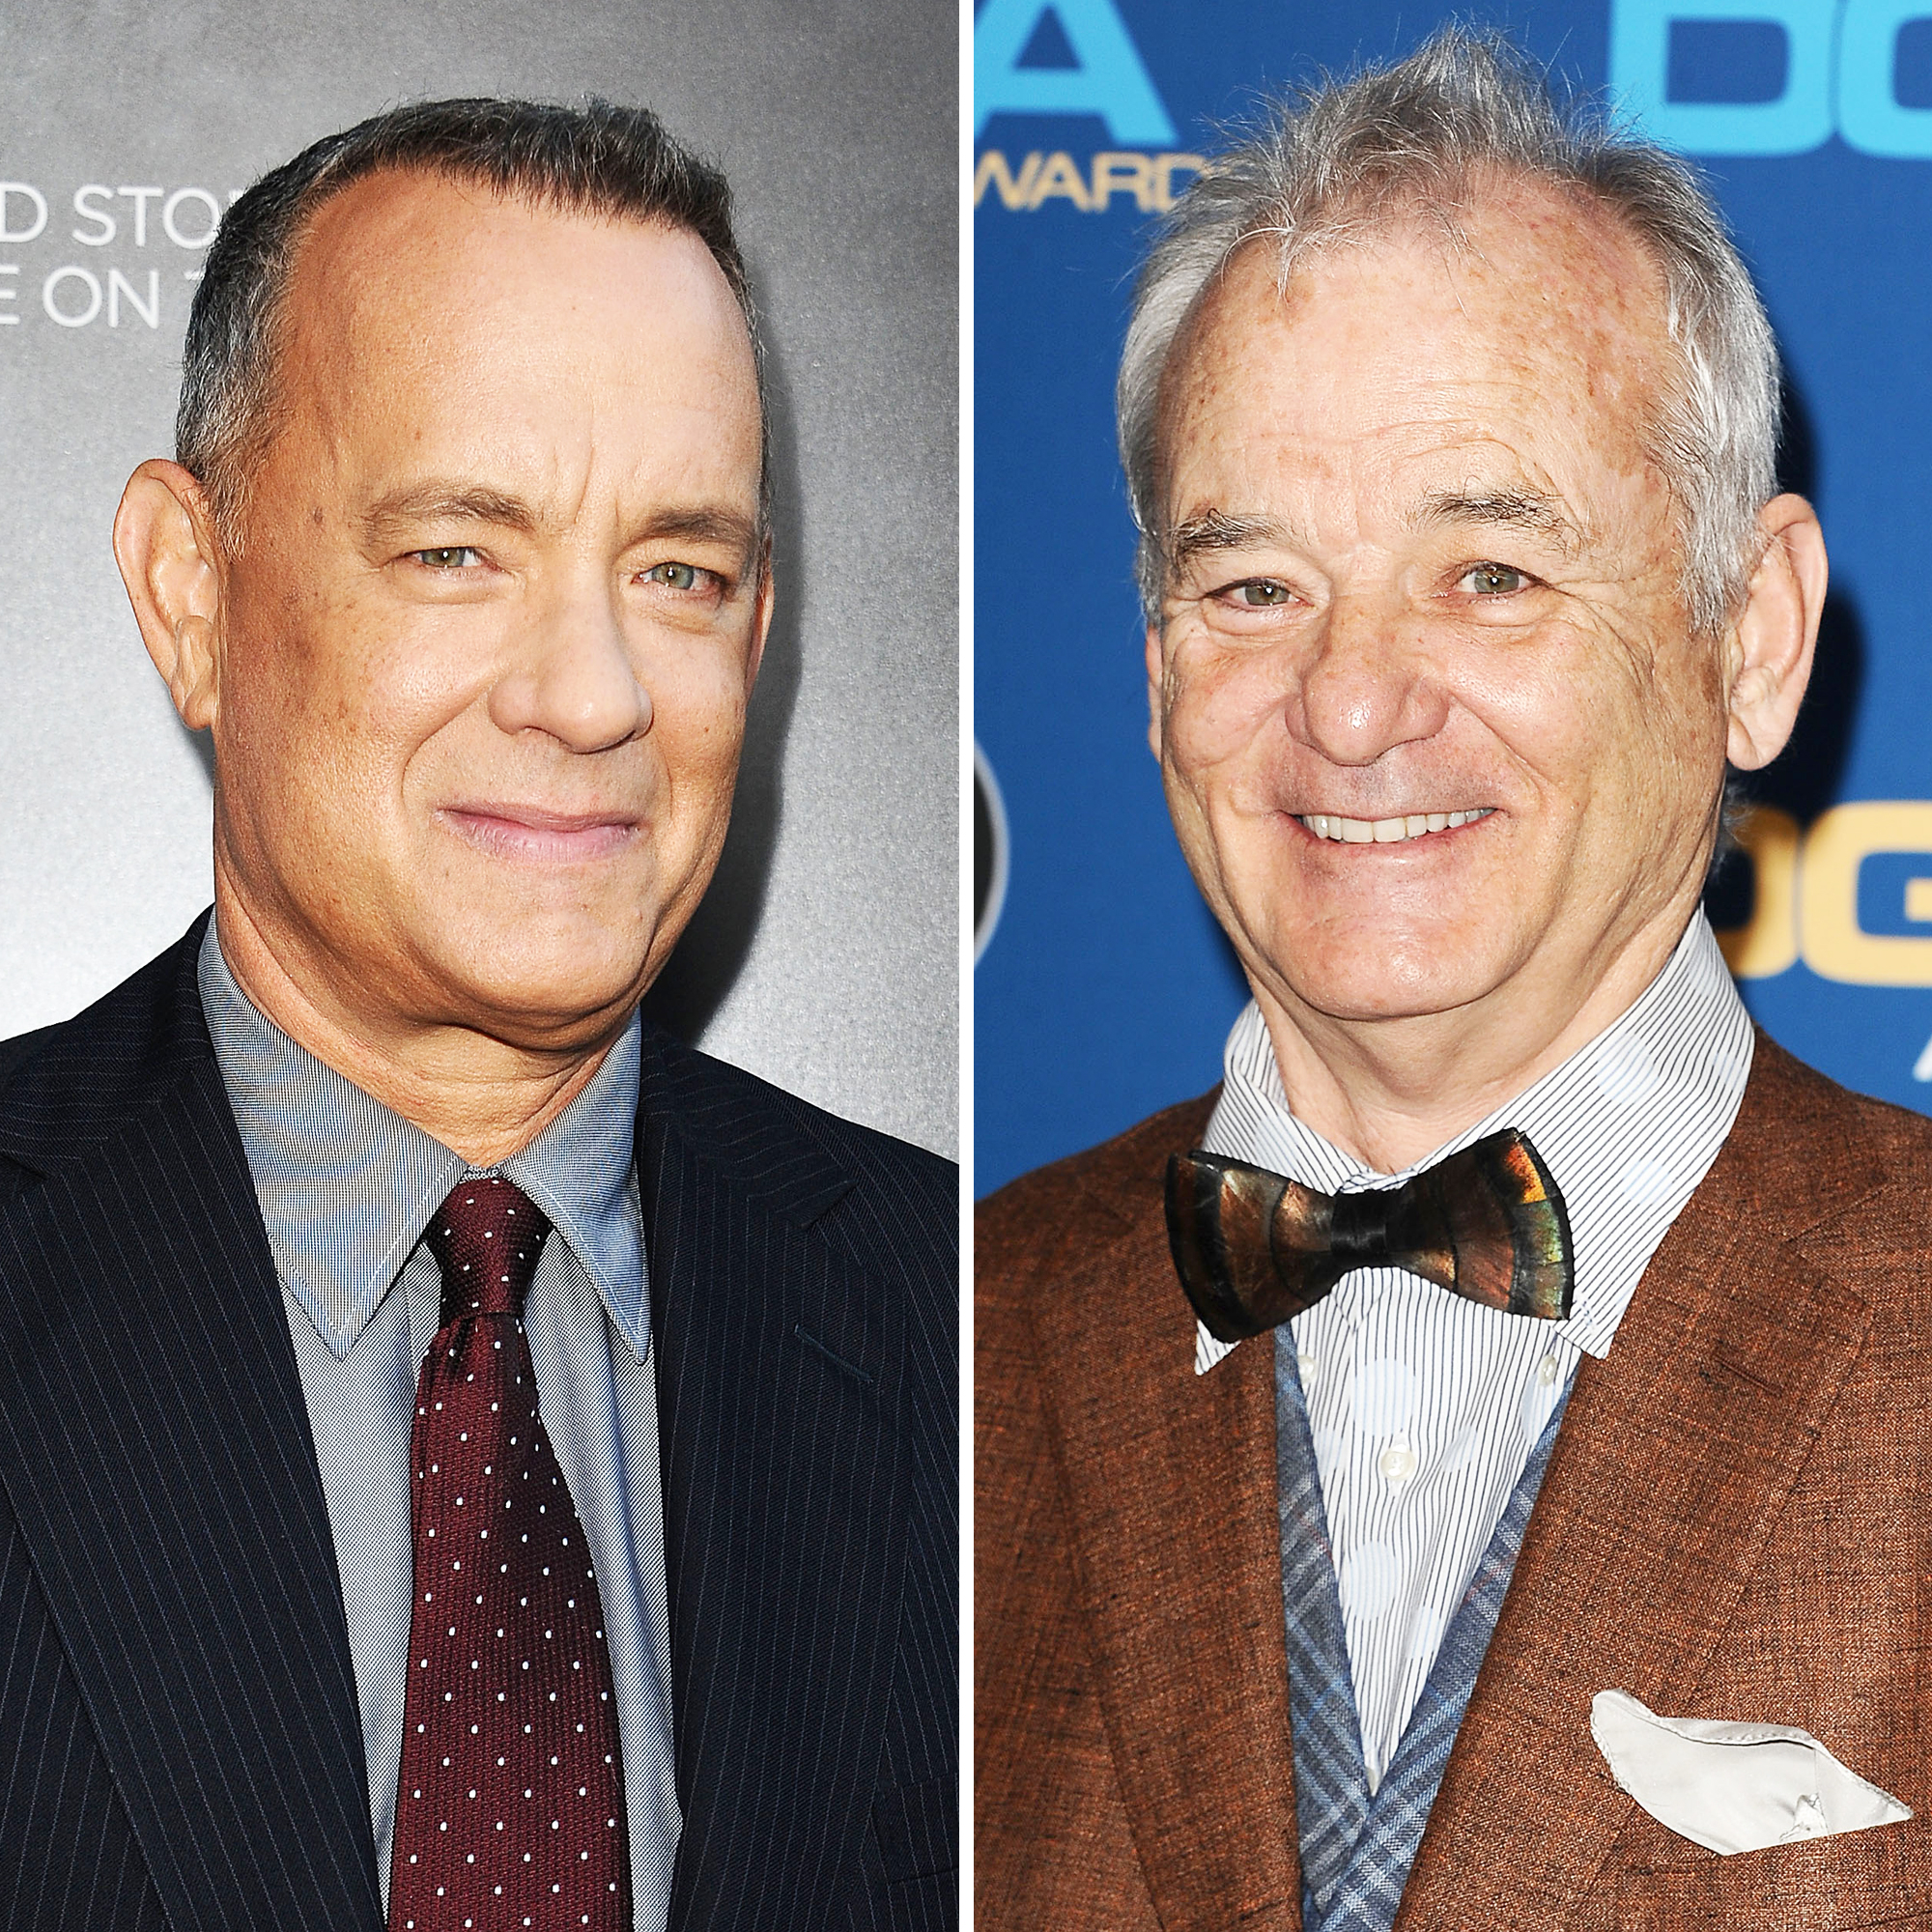 8a800dab9 Is This a Photo of Tom Hanks or Bill Murray?